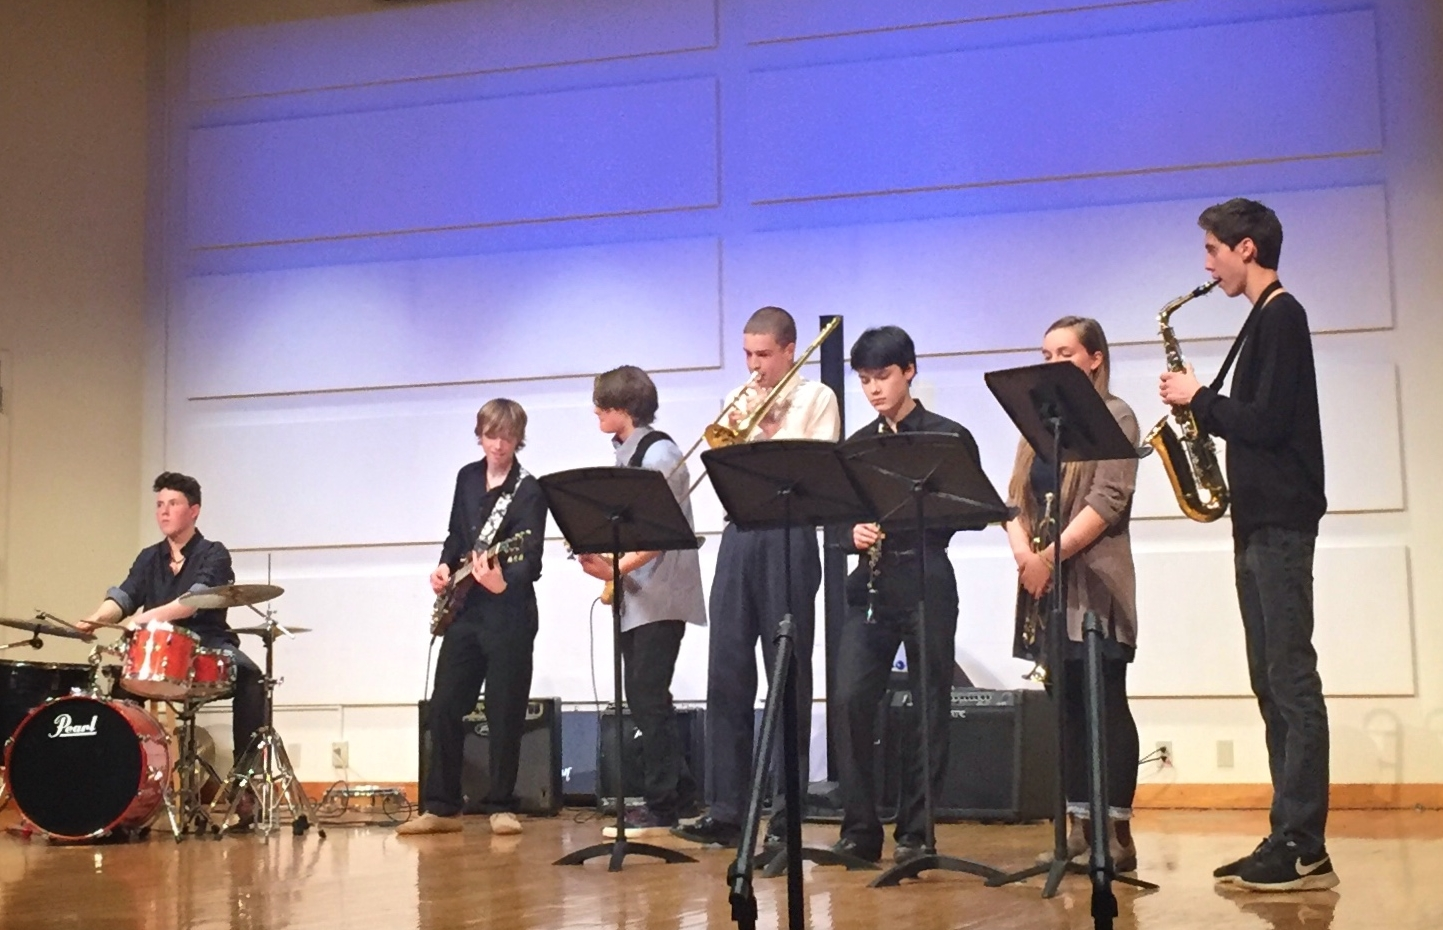 IS THIS MIDDLE SCHOOL JAZZ BAND? NEED PHOTO IF NOT.